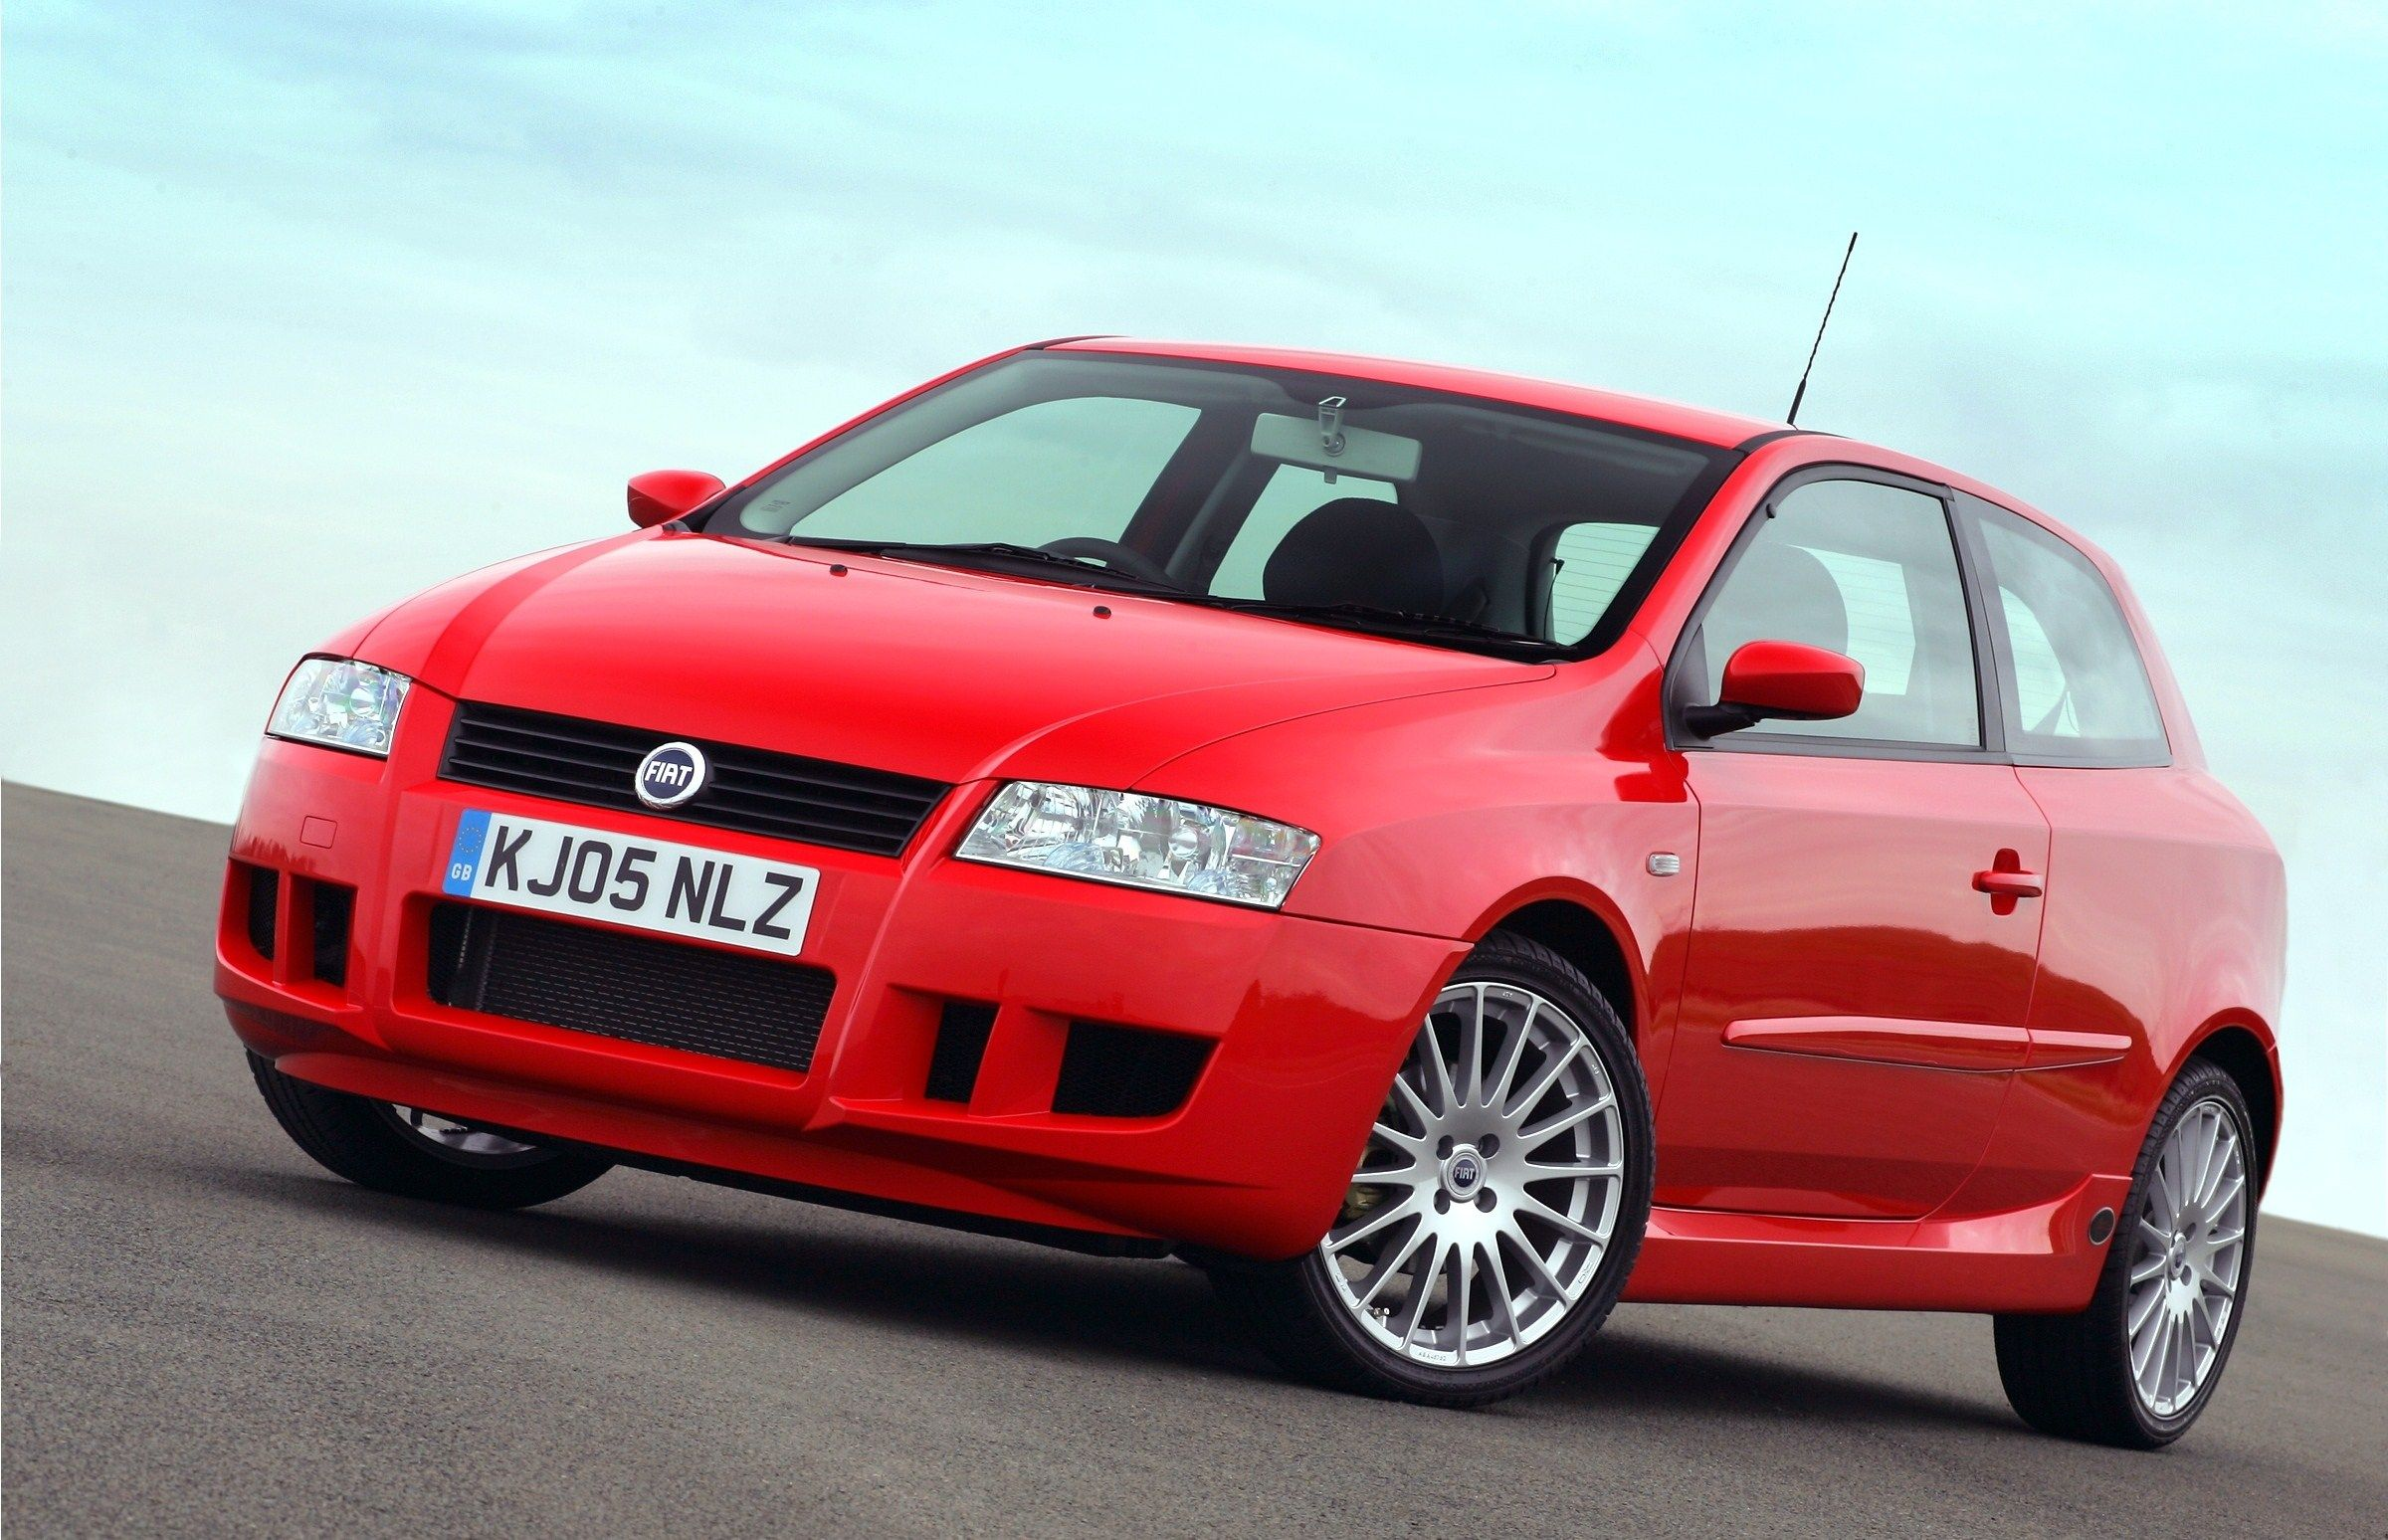 fiat stilo #fiat | fiat stilo | pinterest | fiat, fiat stilo and